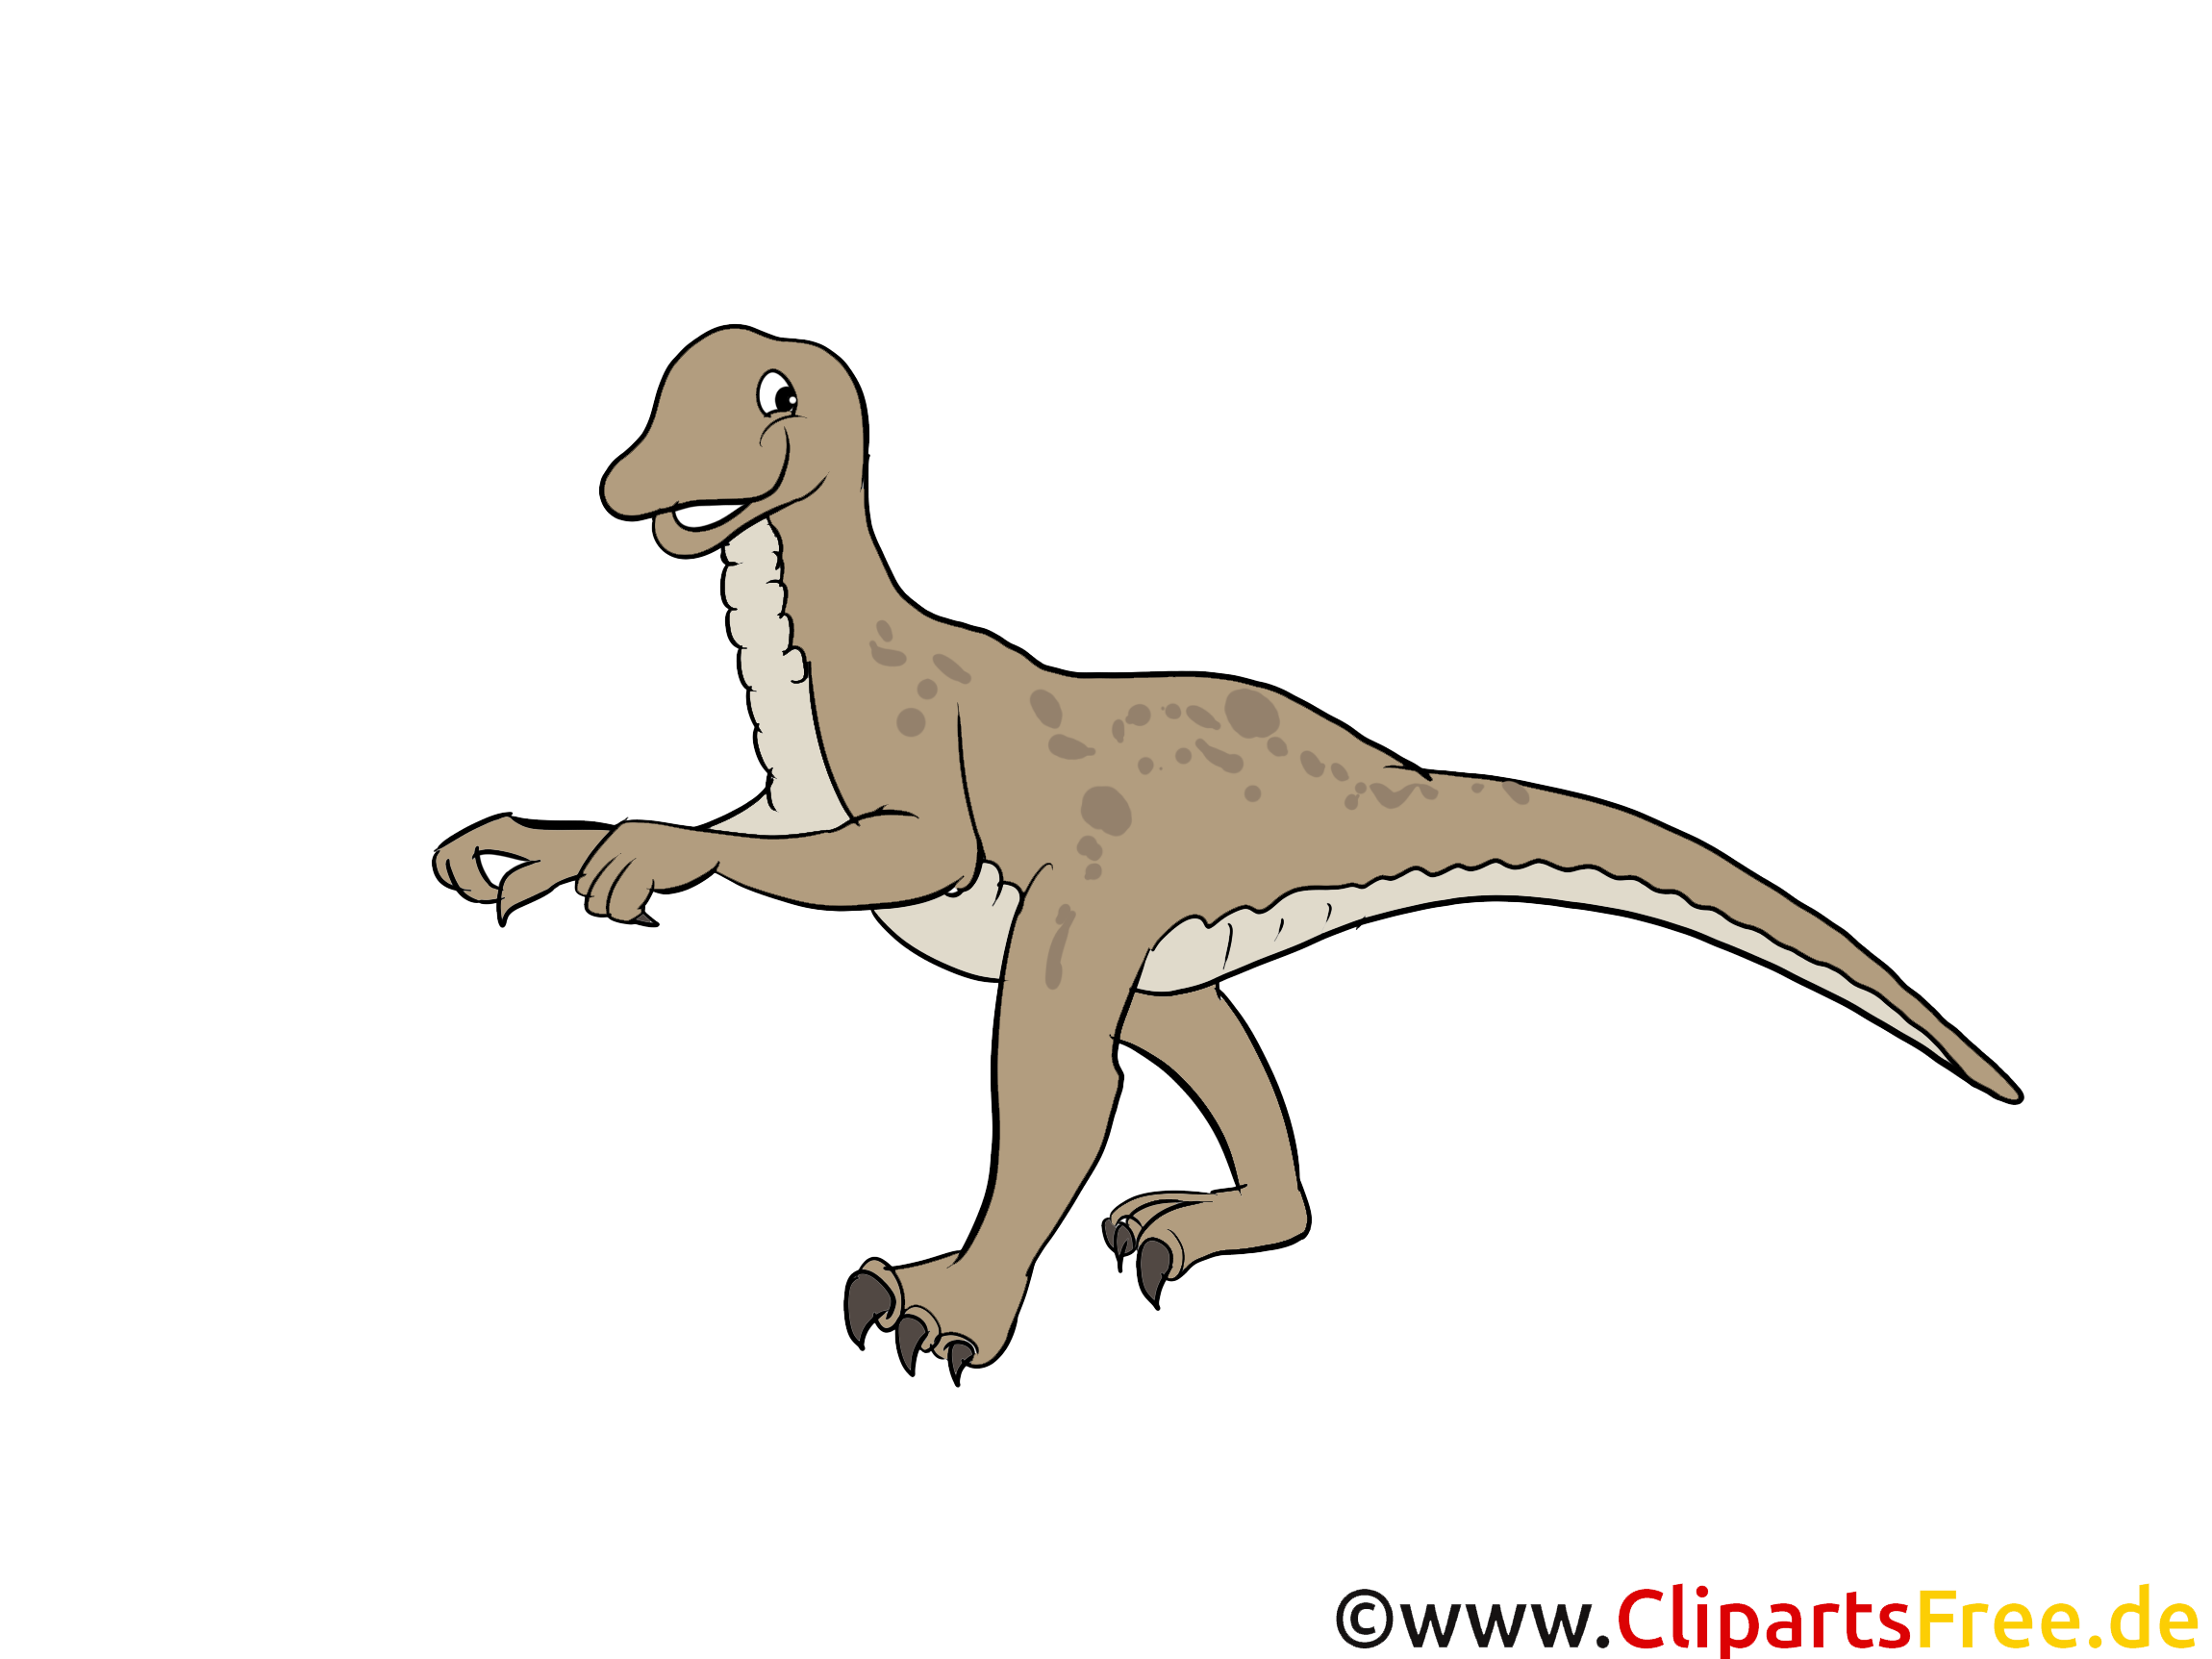 Velociraptor image – Dinosaure images cliparts